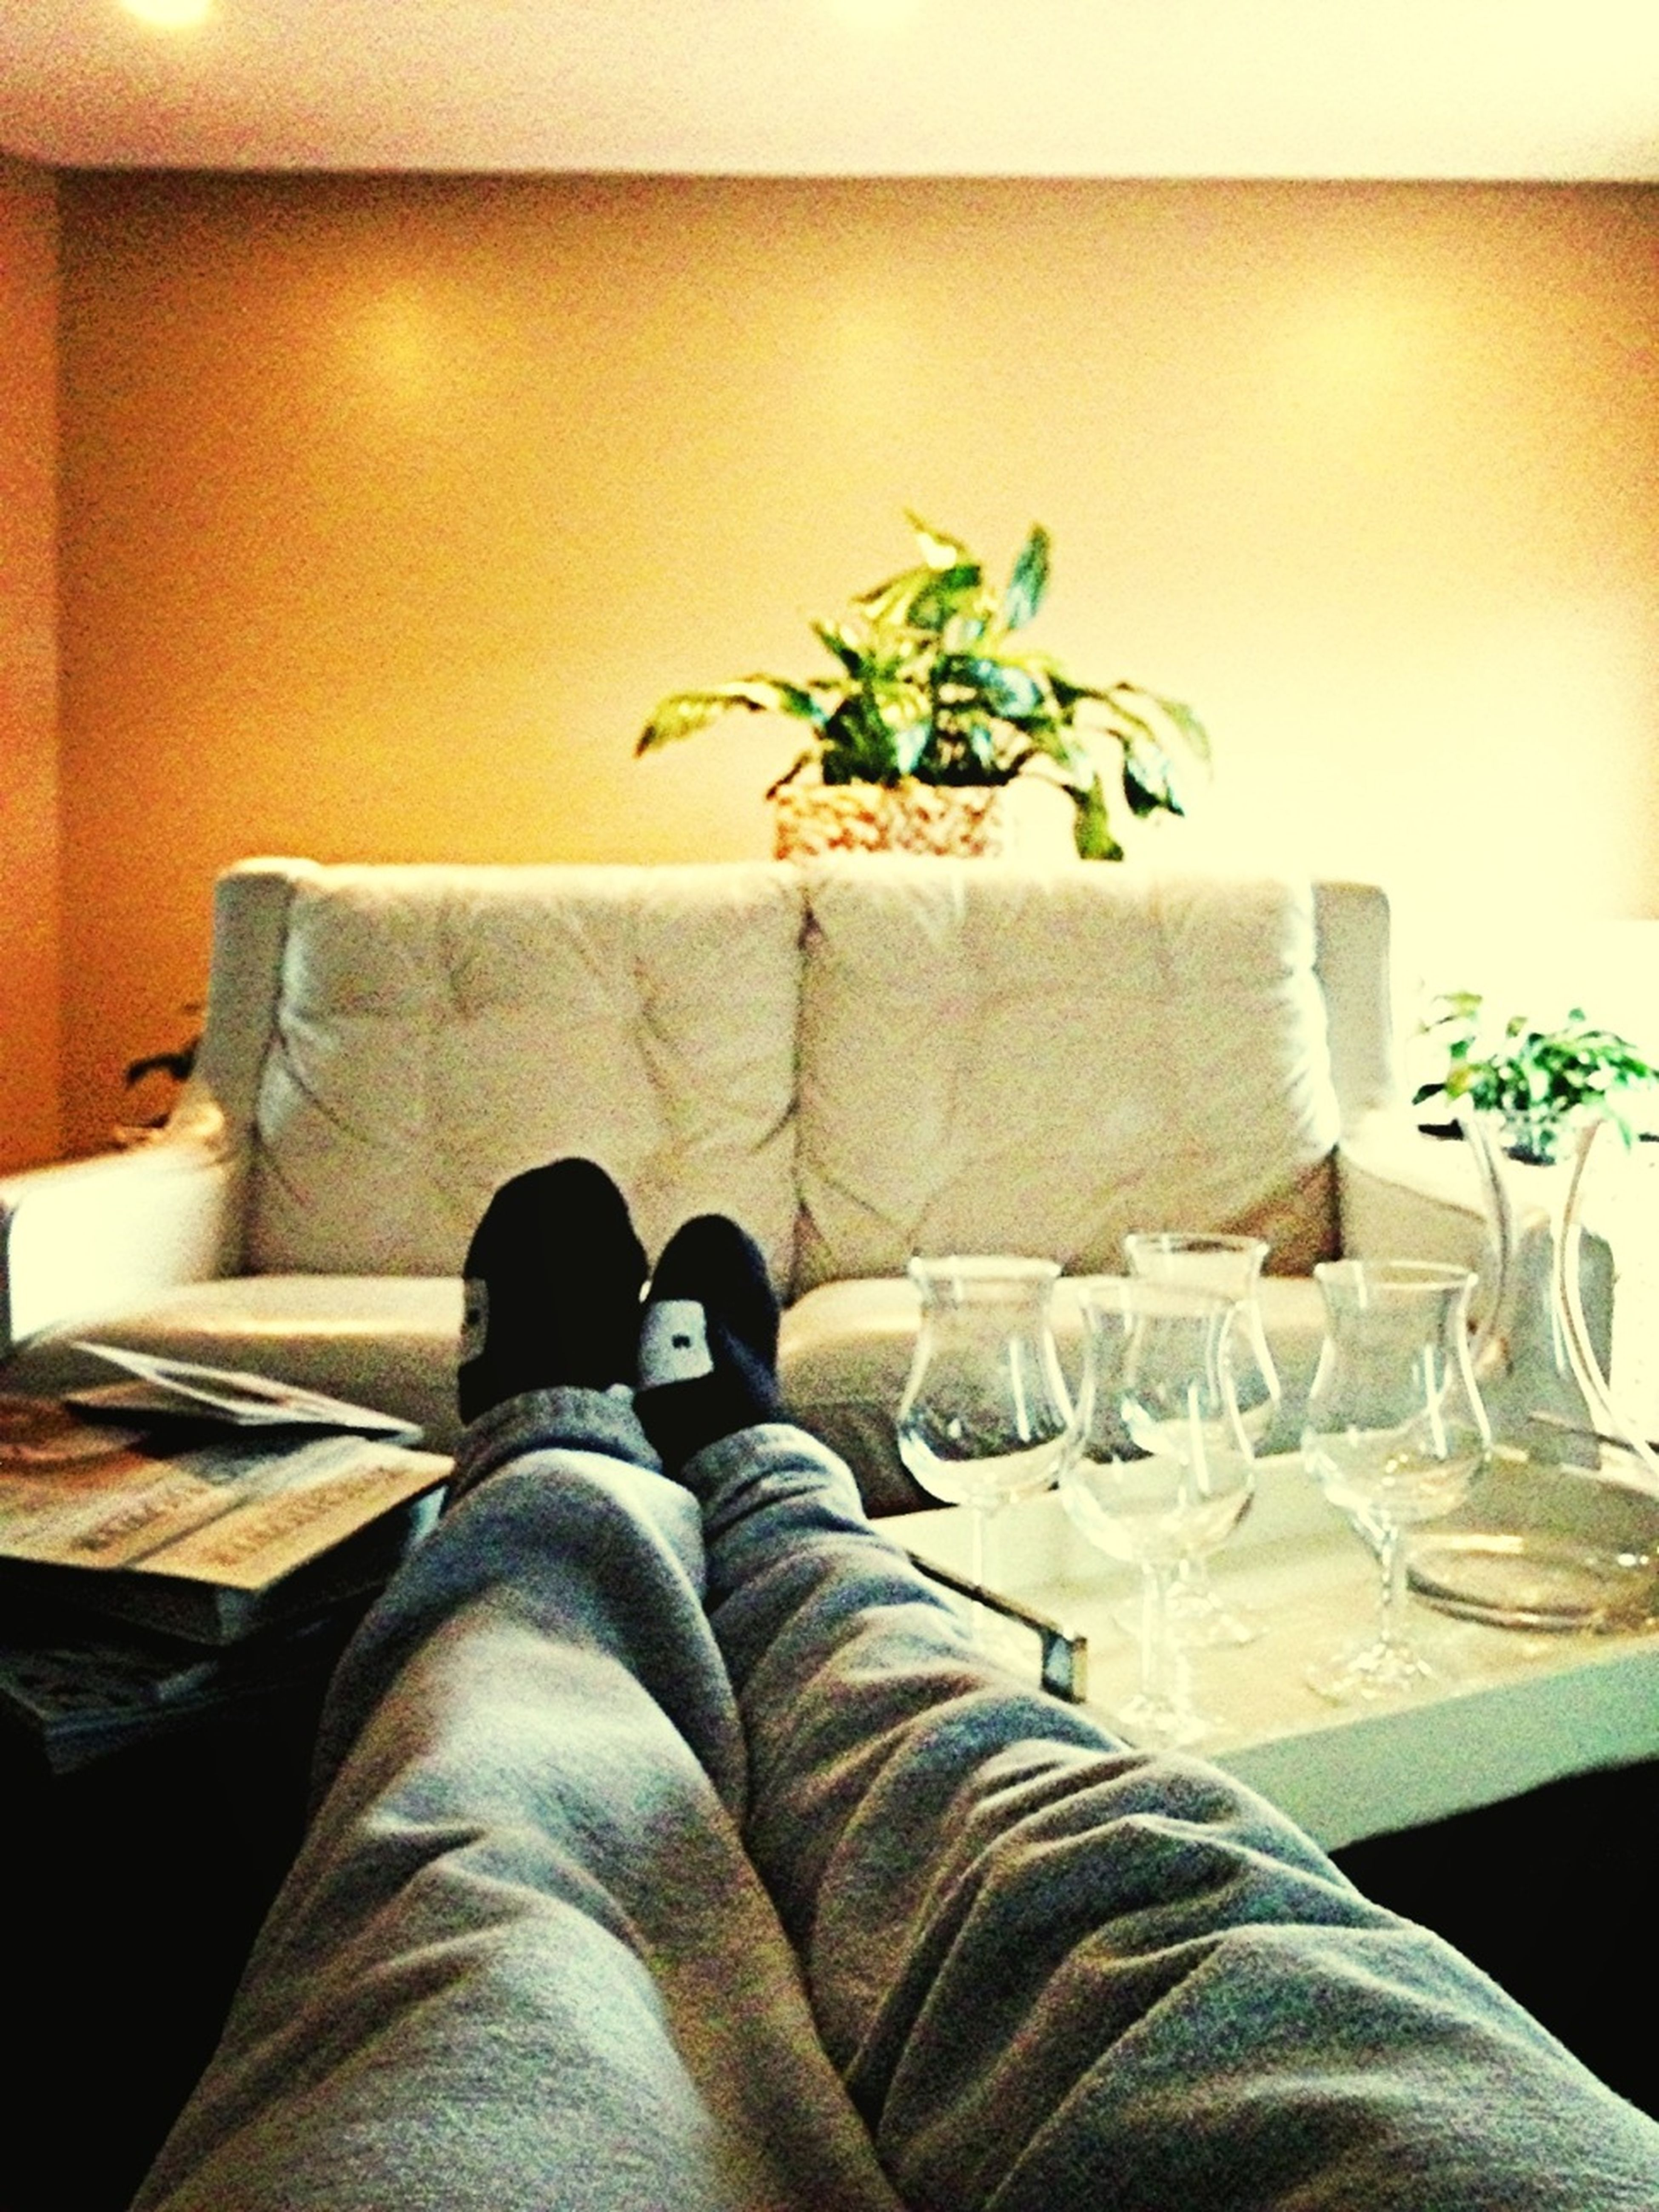 Feet Up Chillen Looking At A Wall